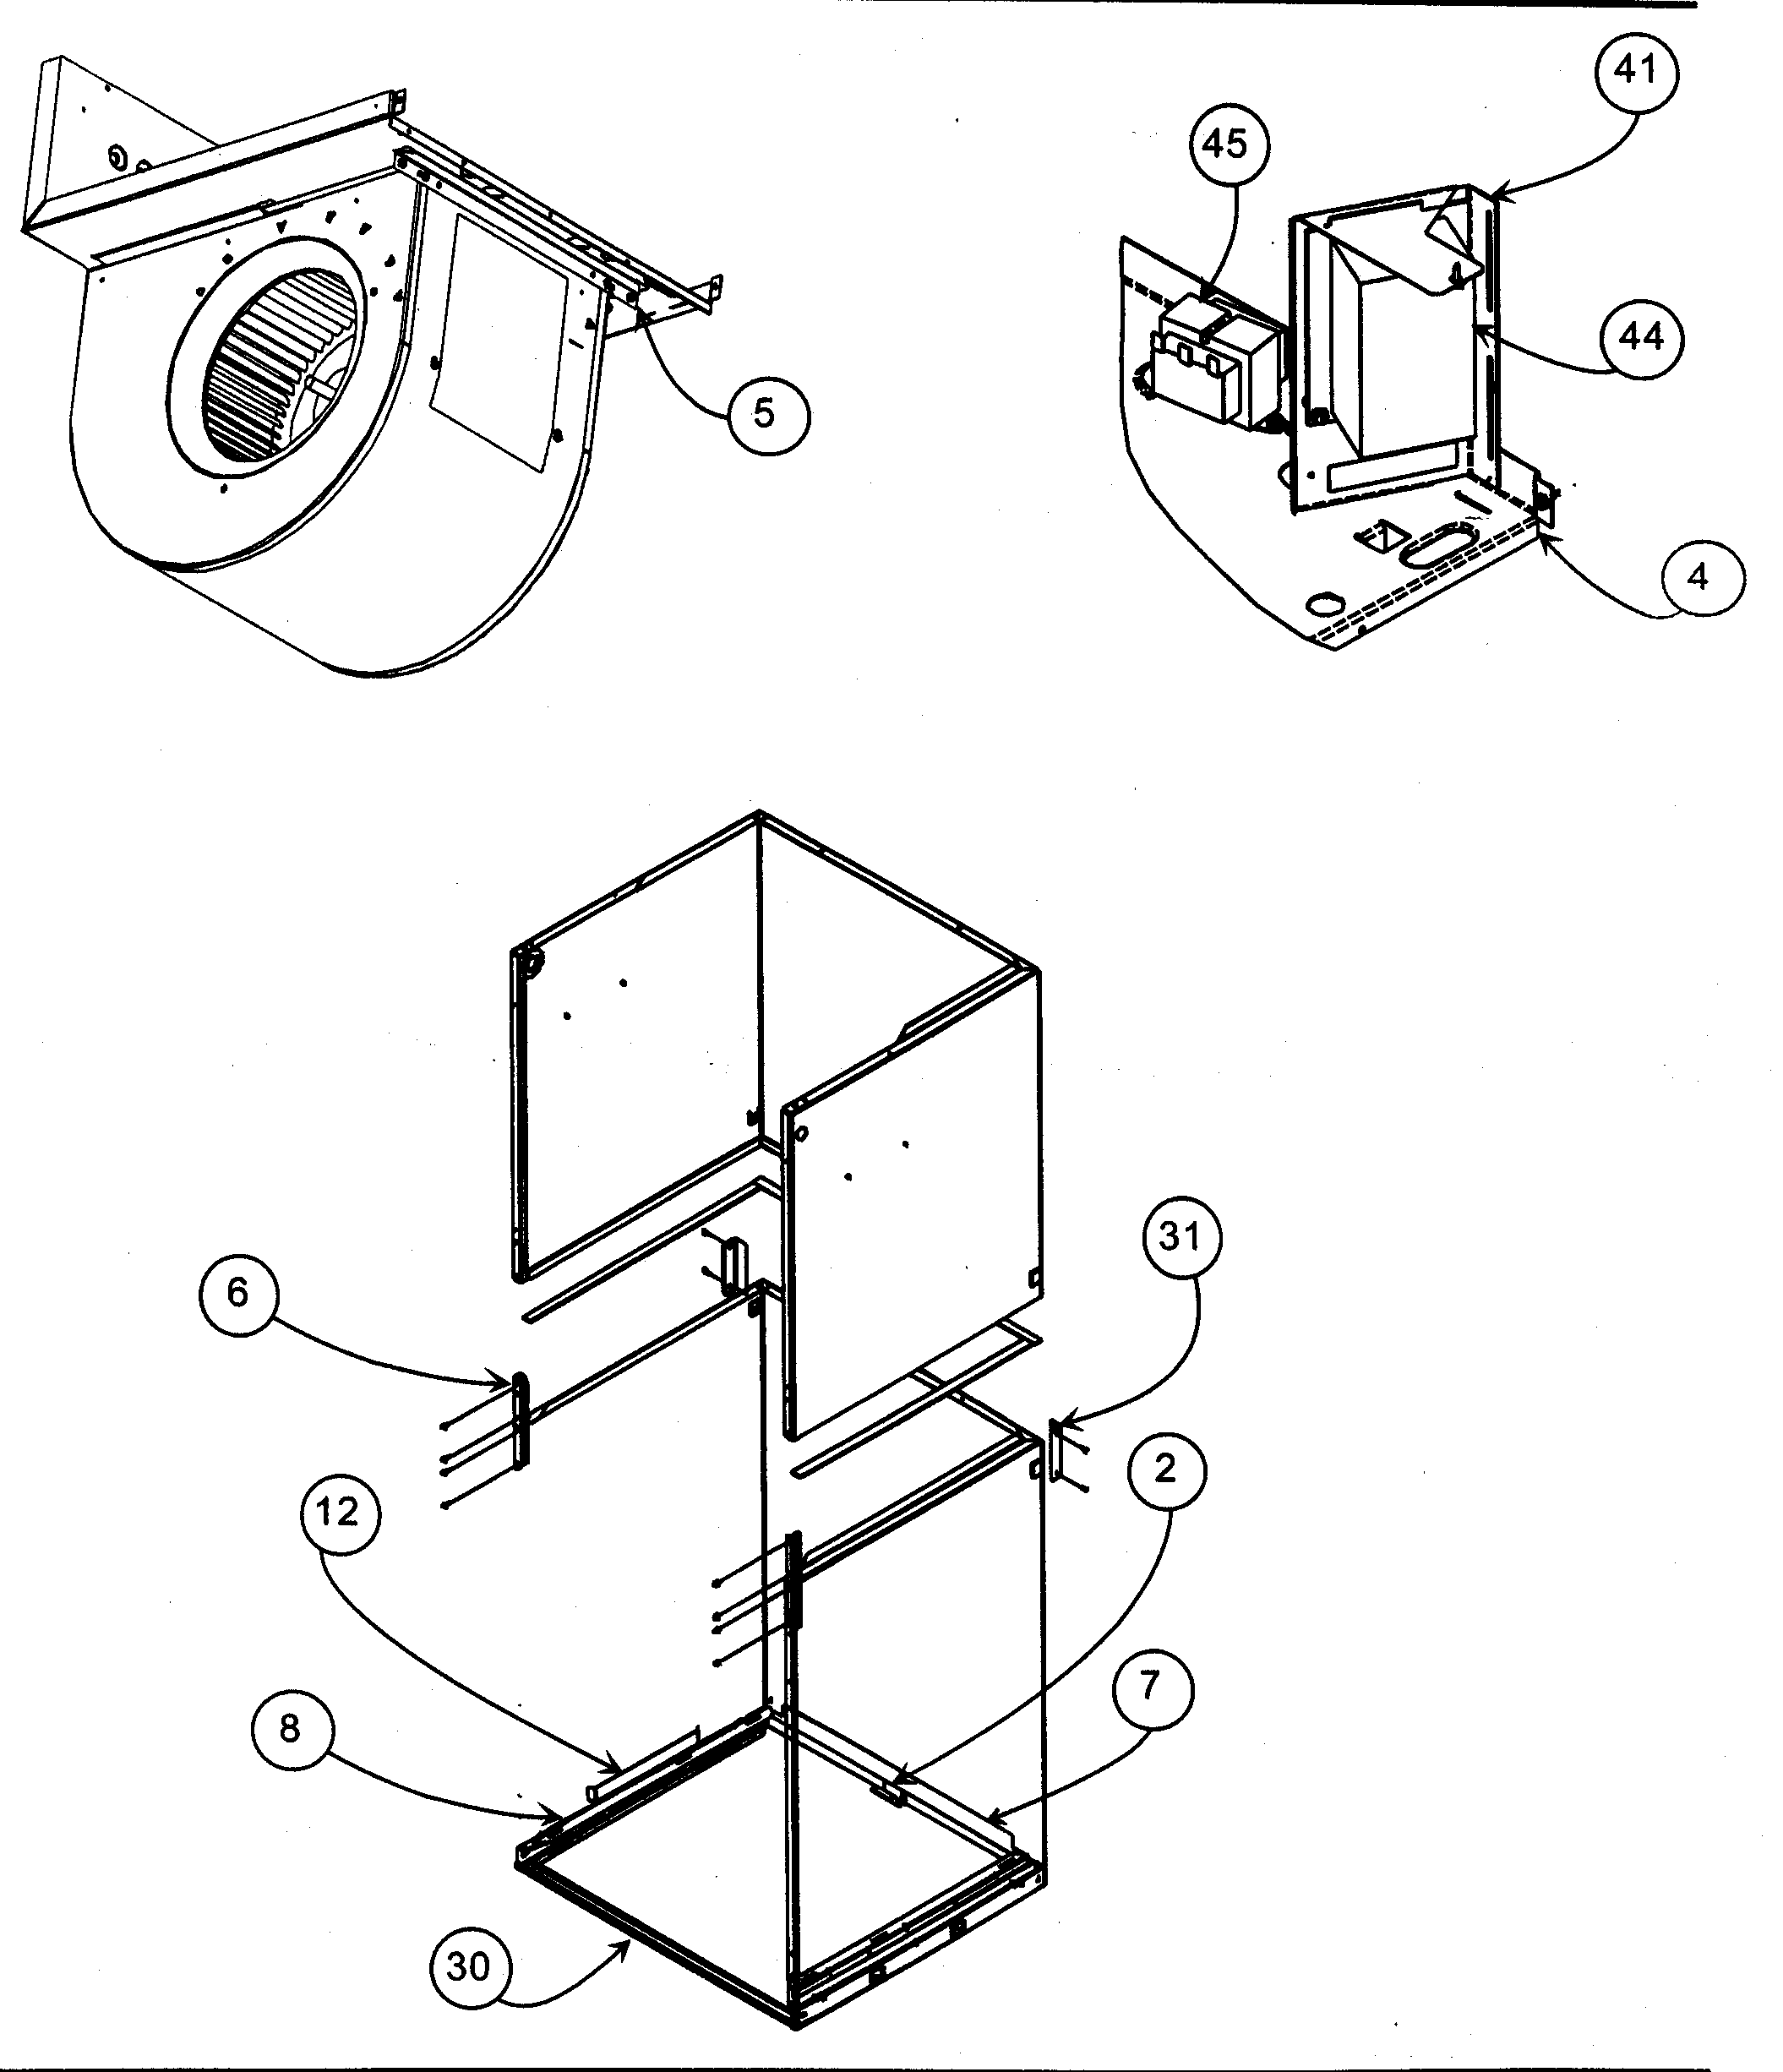 CABINET ASSY 2 Diagram & Parts List for Model